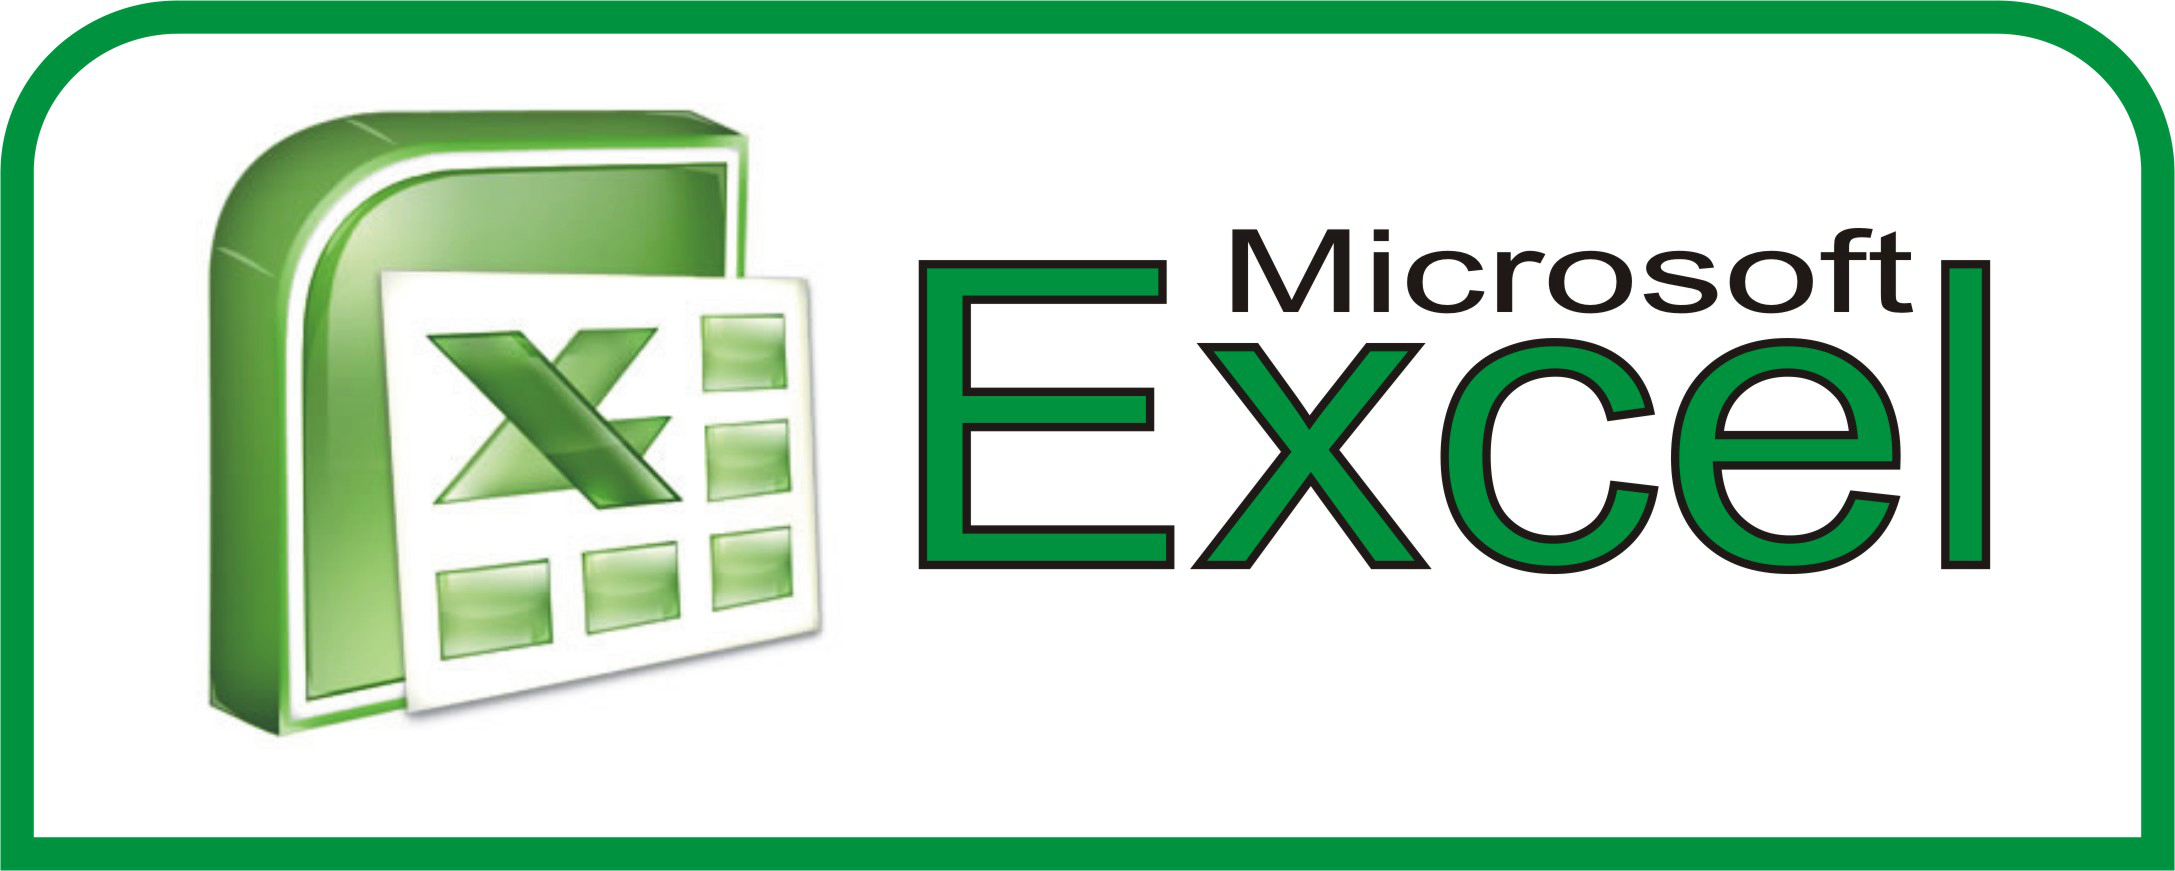 Ediblewildsus  Unique  Excel Shortcuts You Probably Didnt Know About  Techdissected With Extraordinary How To Strike Out In Excel Besides How To Unlock Cells In Excel  Furthermore Excel Formulas For Dates With Agreeable How To Enter Within A Cell In Excel Also How To Create A Gantt Chart In Excel In Addition Subtotal Function In Excel And Rotate Cells In Excel As Well As Advanced Excel Functions Additionally Excel Temp Files From Techdissectedcom With Ediblewildsus  Extraordinary  Excel Shortcuts You Probably Didnt Know About  Techdissected With Agreeable How To Strike Out In Excel Besides How To Unlock Cells In Excel  Furthermore Excel Formulas For Dates And Unique How To Enter Within A Cell In Excel Also How To Create A Gantt Chart In Excel In Addition Subtotal Function In Excel From Techdissectedcom